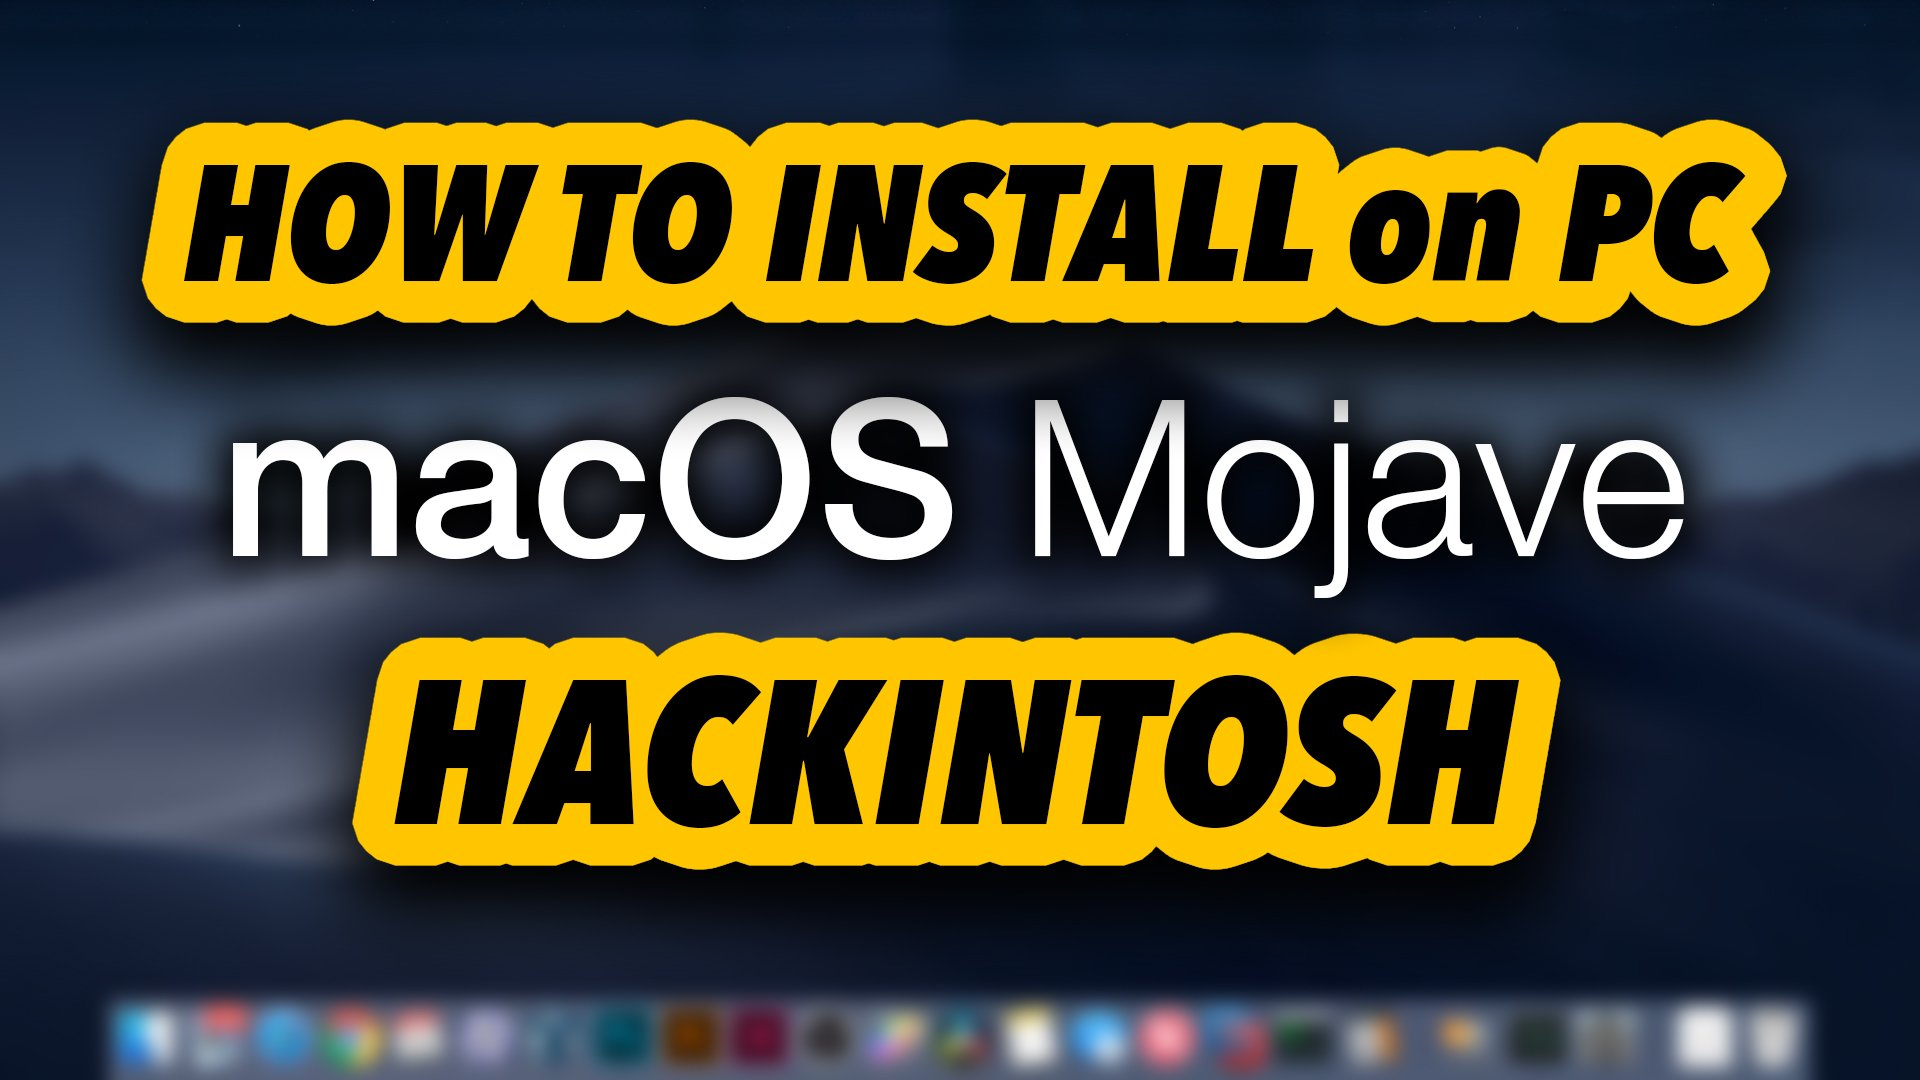 HACKINTOSH GUIDE - How to Install macOS Mojave on PC from Windows